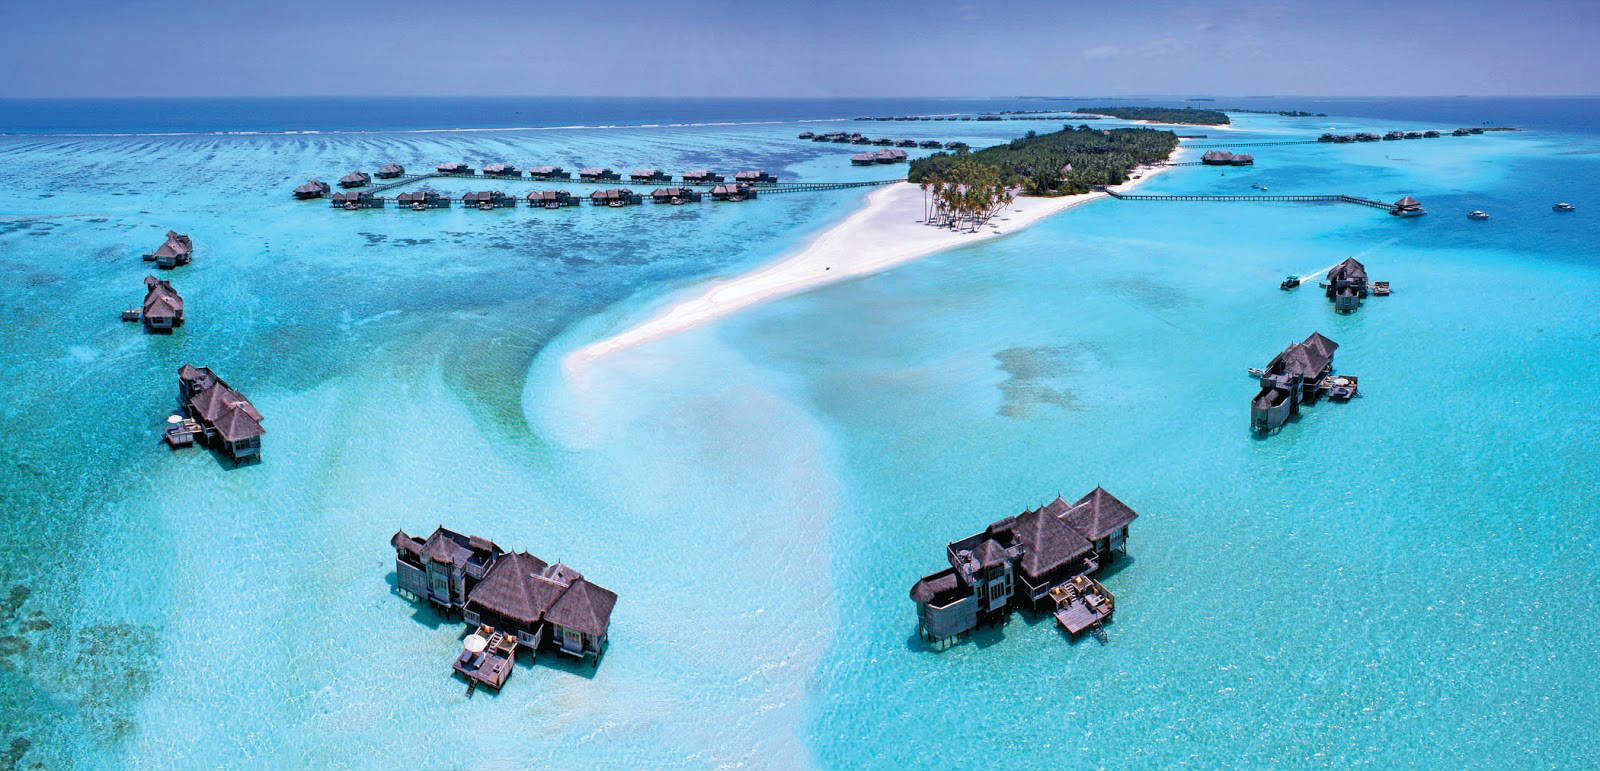 GILI LANKANFUSHI- AMAZING RESORT We all love to travel and have unforgettable holidays. Sometimes it depends on our budget where we will go. But what will